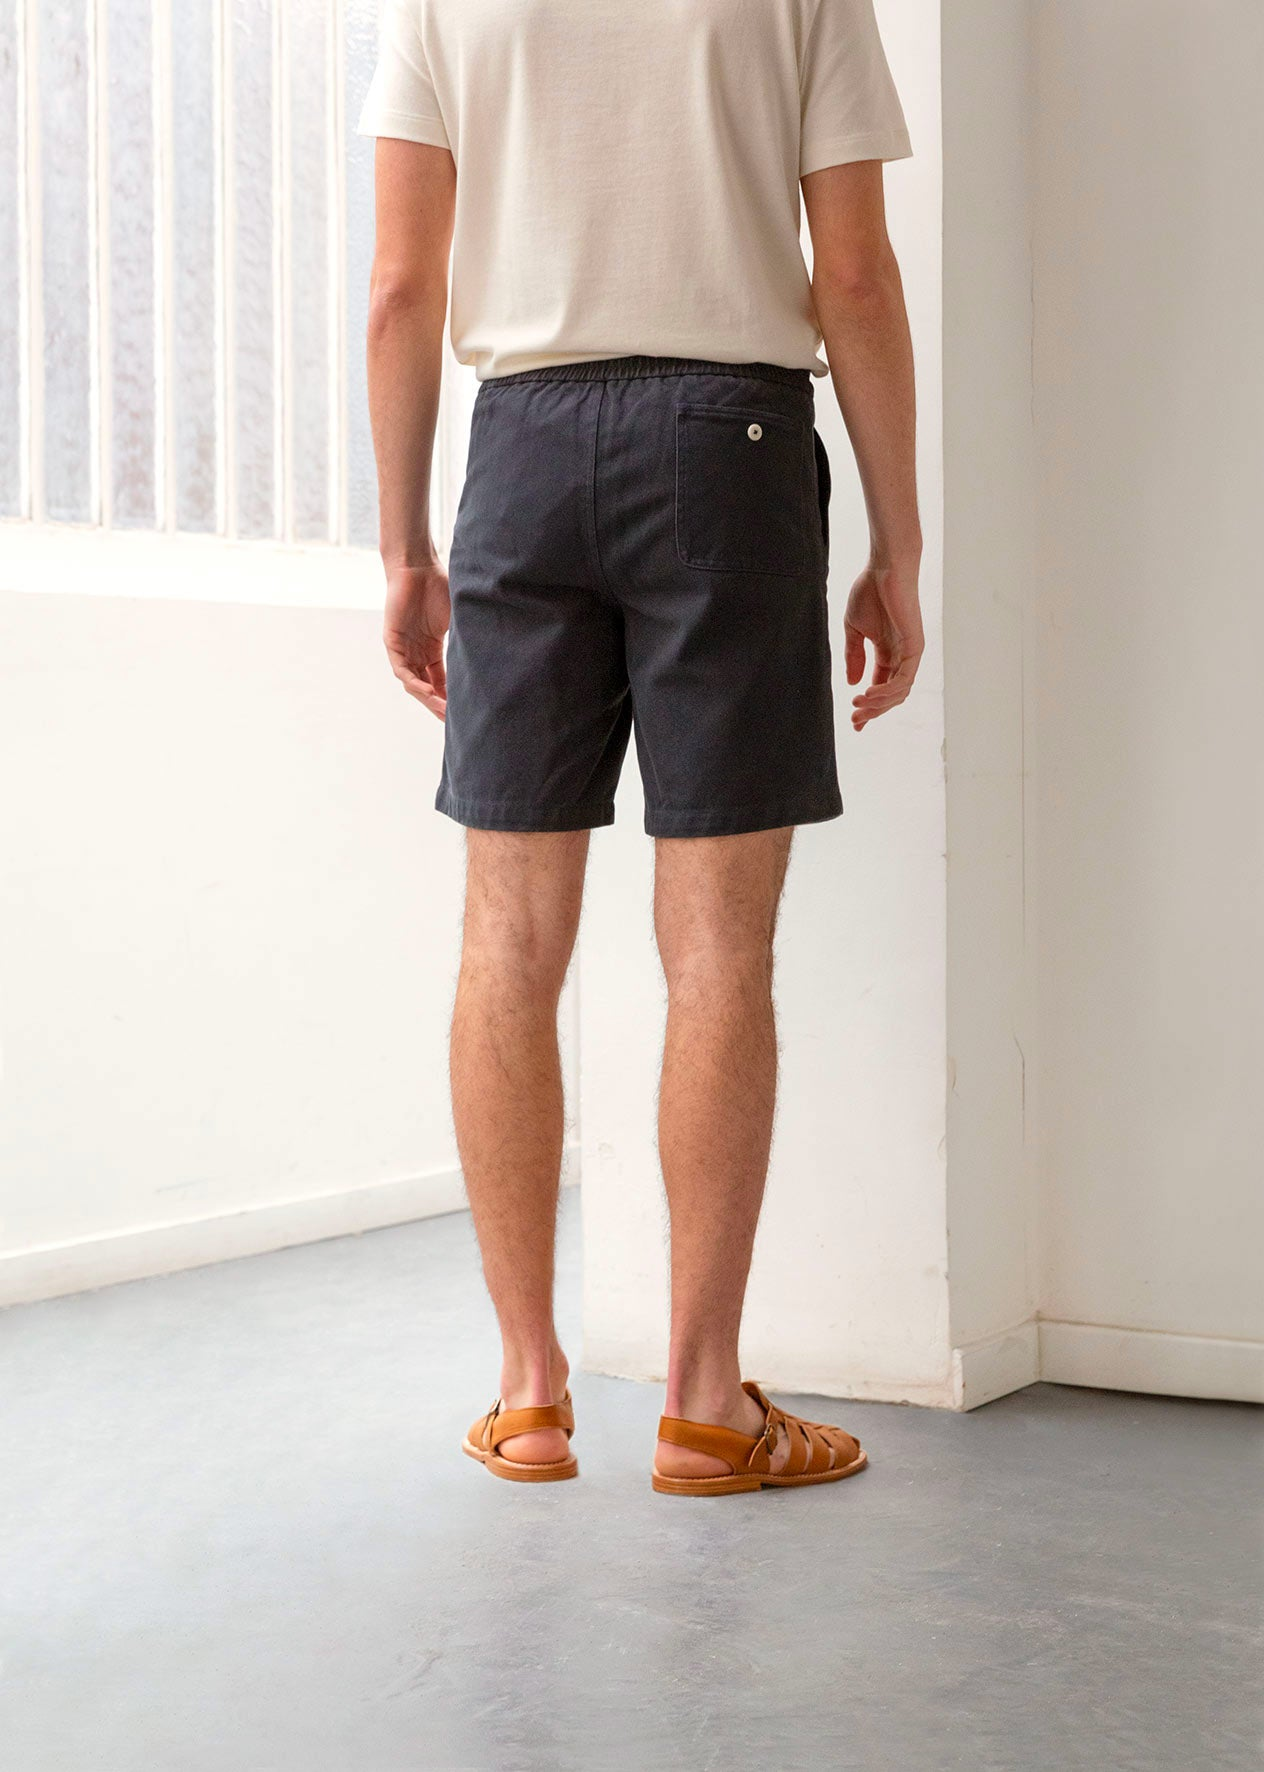 Painter's short - Organic cotton twill - Navy - De Bonne Facture